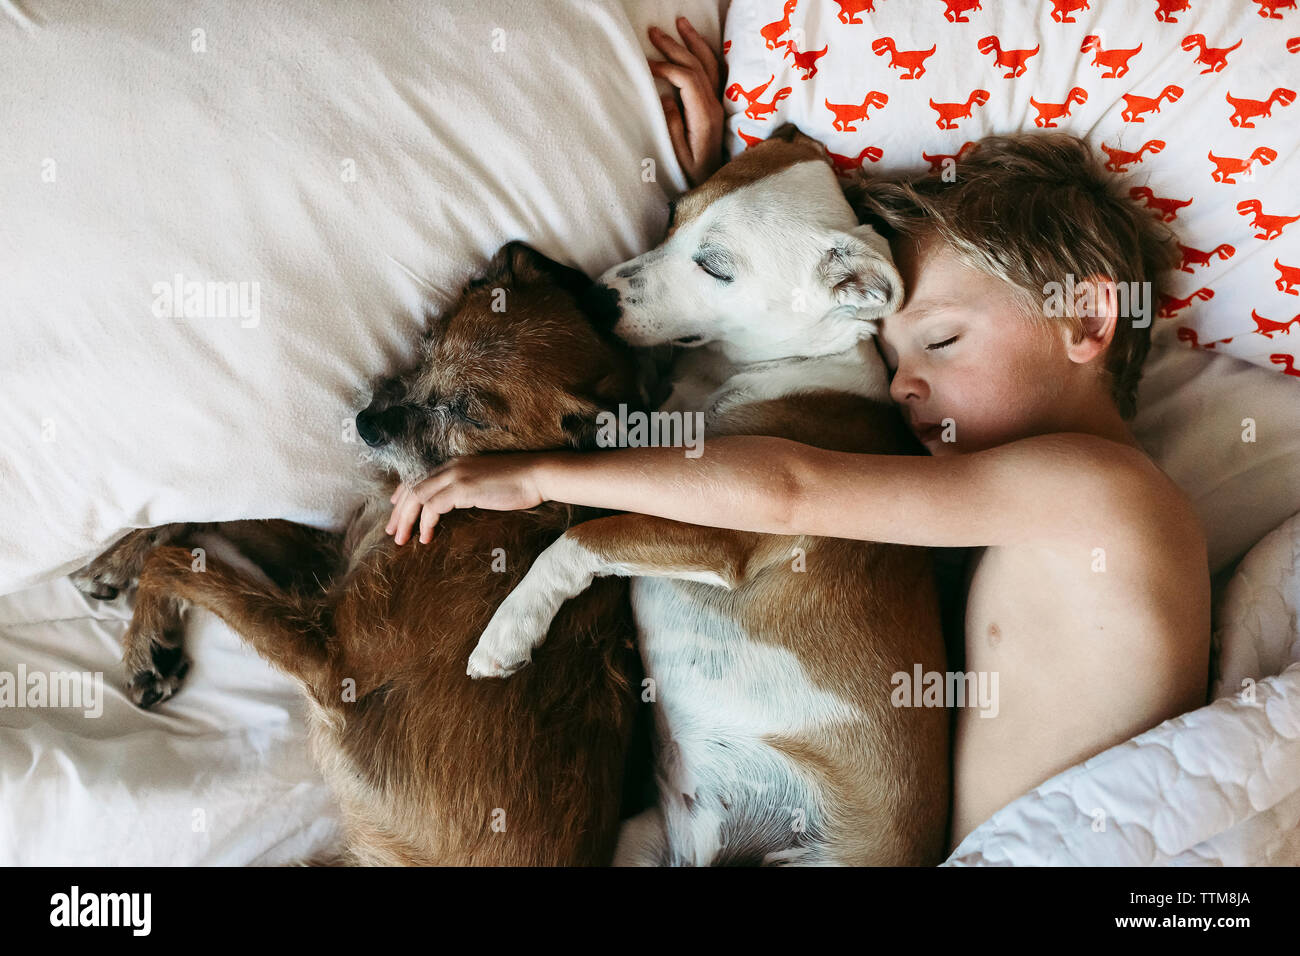 Overhead view of shirtless boy sleeping with dogs on bed - Stock Image